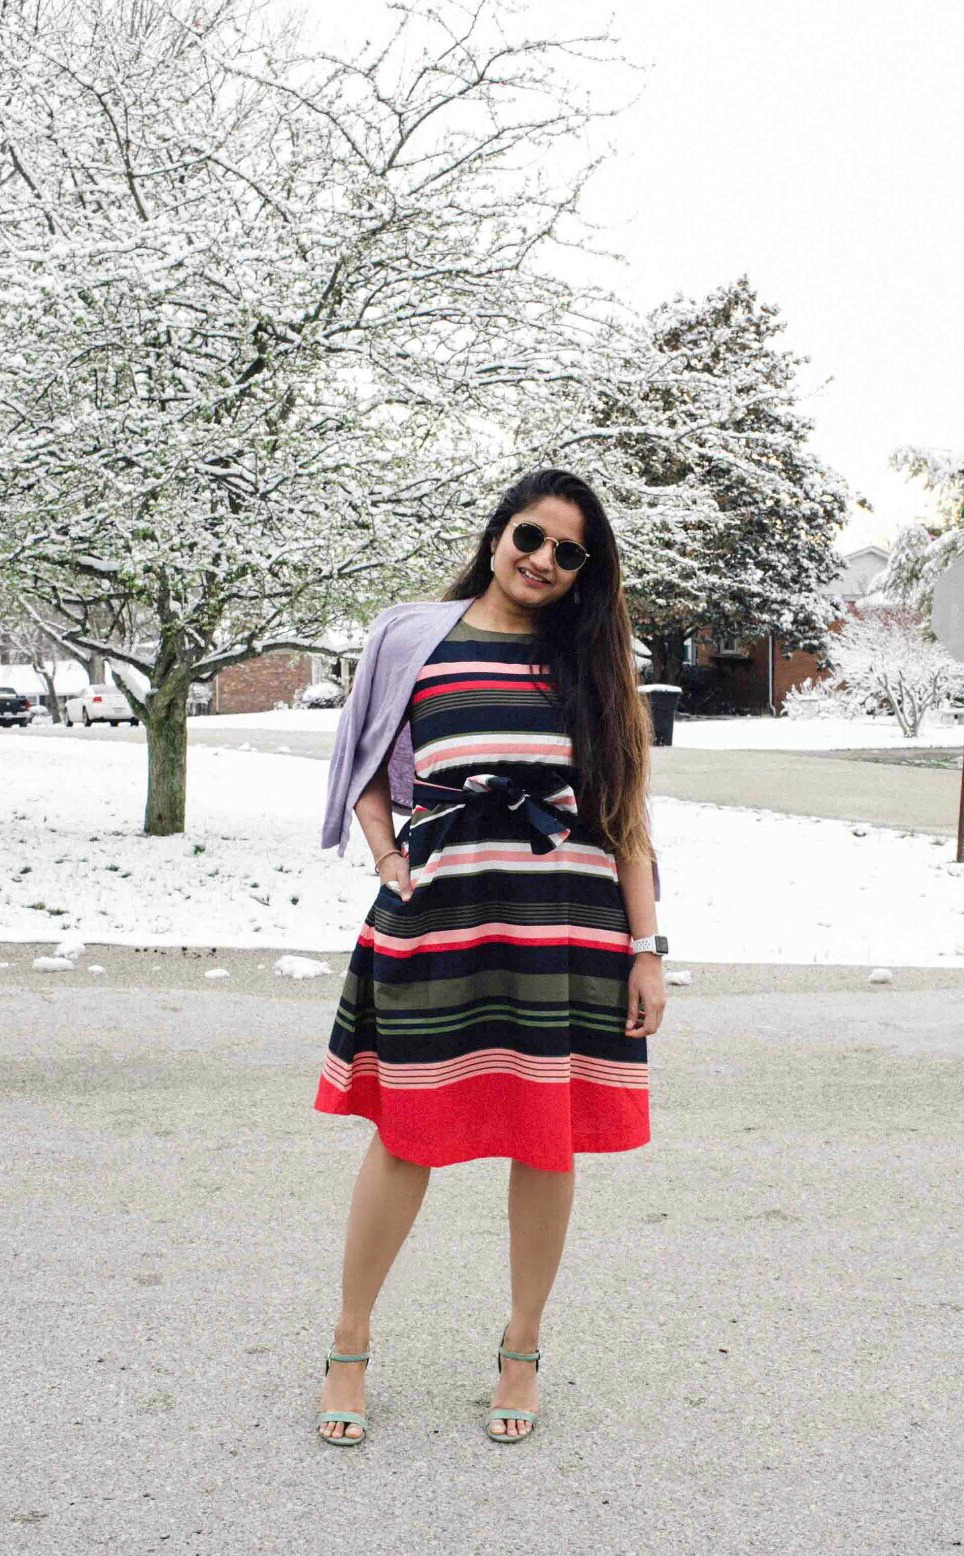 Lifestyle Blog Dreaming Loud sharing Tanger Outlet Spring work wear haul | Tanger Outlet Spring Work Outfits Haul featured by popular Ohio modest fashion blogger, Dreaming Loud